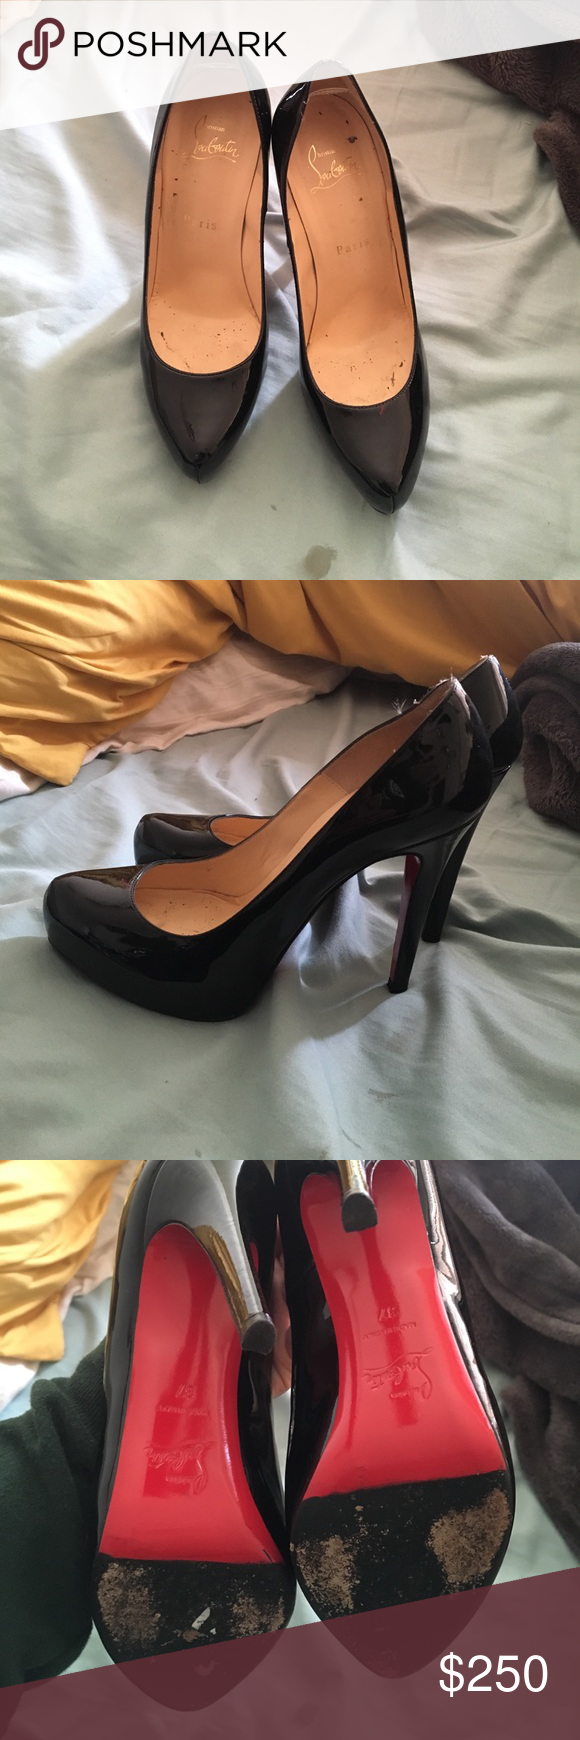 feac857ec32 Refurbished Christian Louboutins Bought from Nordstrom rack used ...